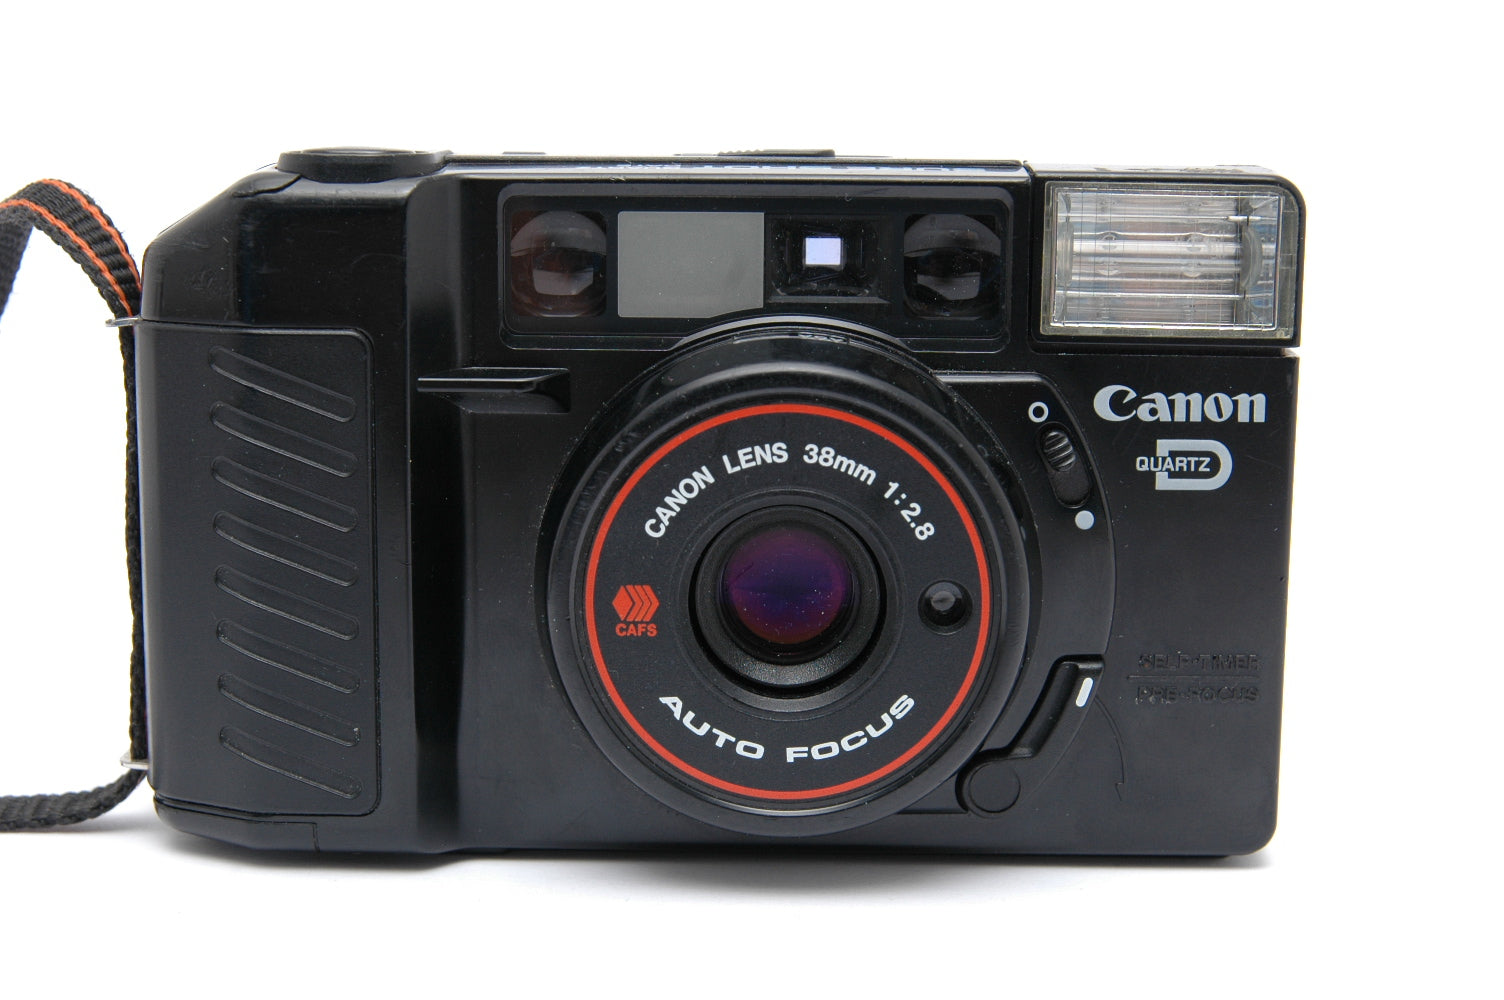 Used Canon Sure Shot Quartz Date 35mm Point and Shoot